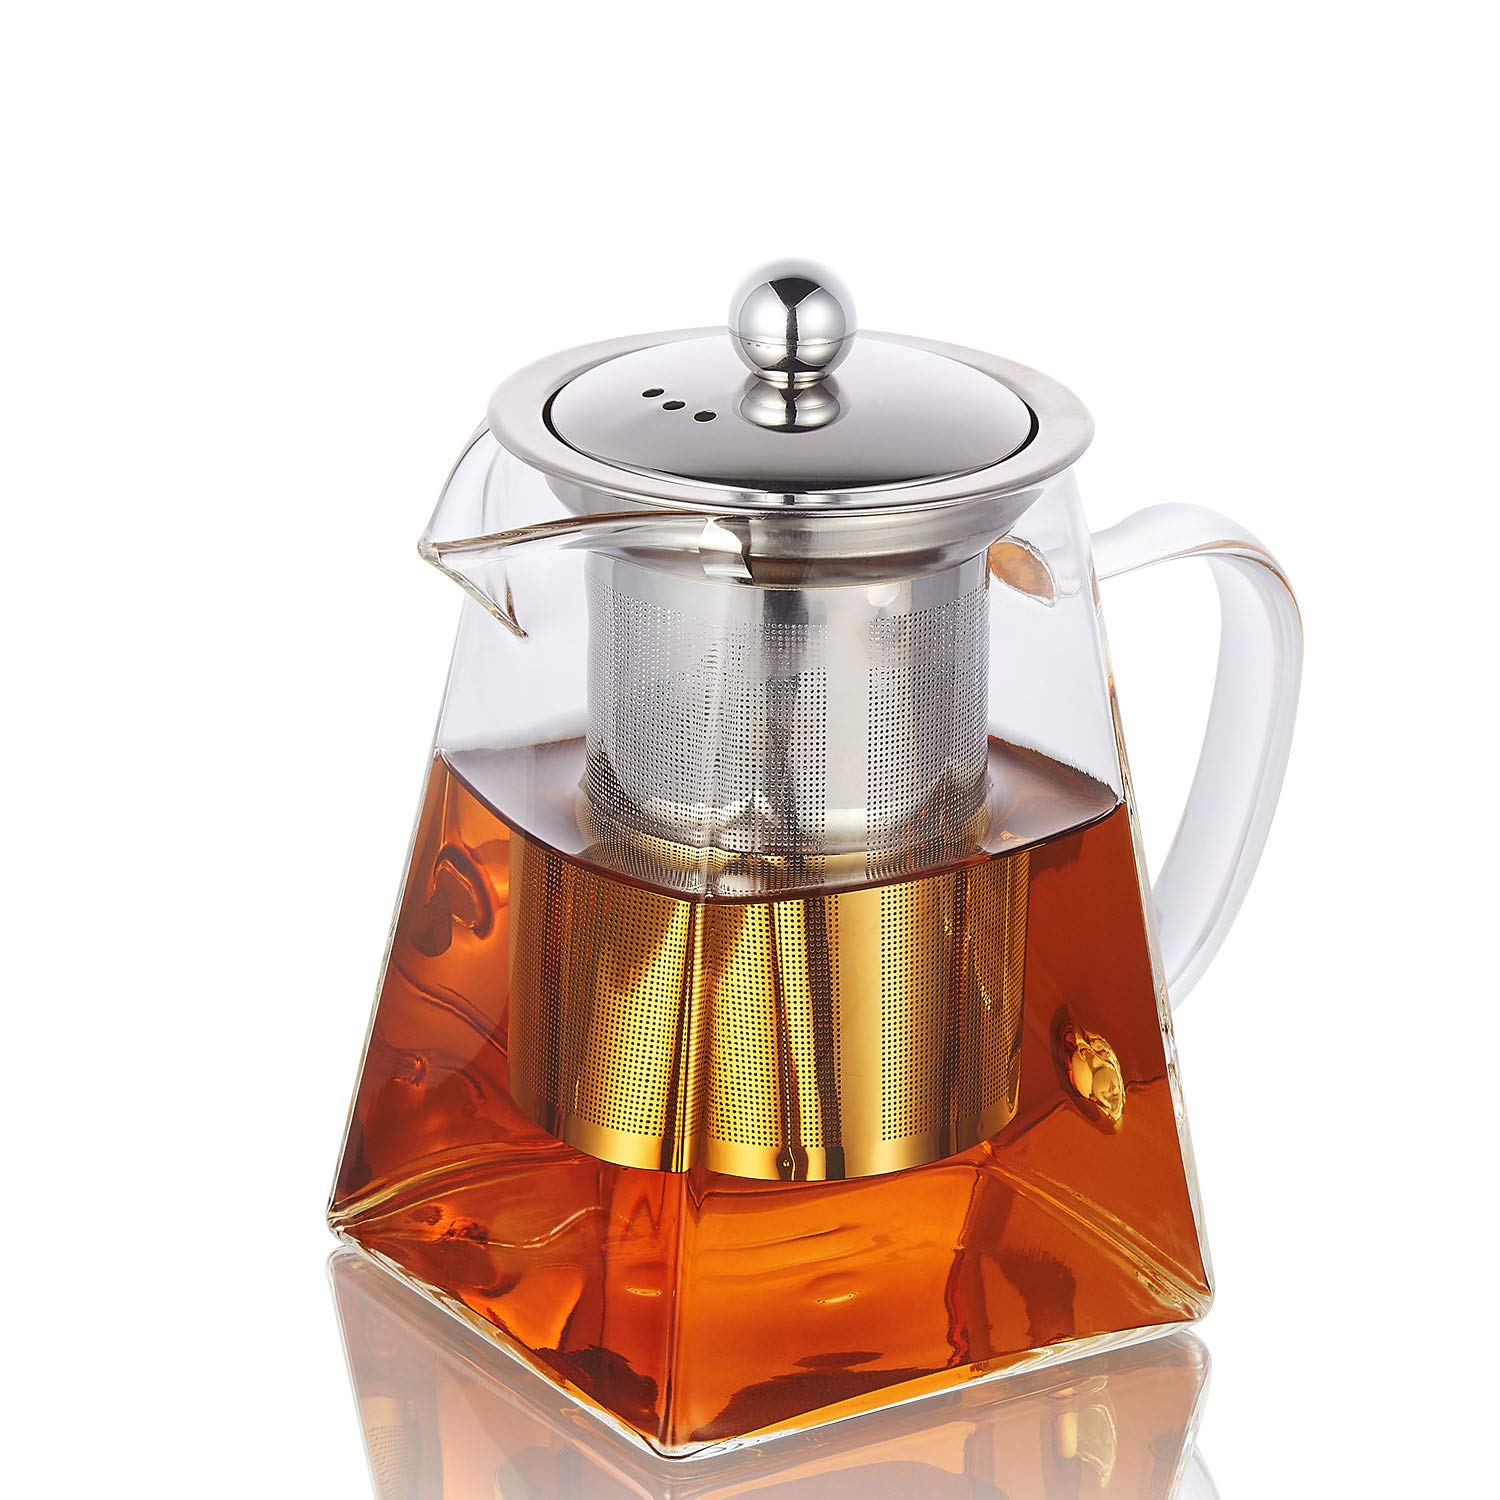 Teapot with Infuser,750 ml /26.41oz Borosilicate Glass Tea Pot with Tea Strainers for Loose Leaf Tea, Microwavable and Stovetop Safe …